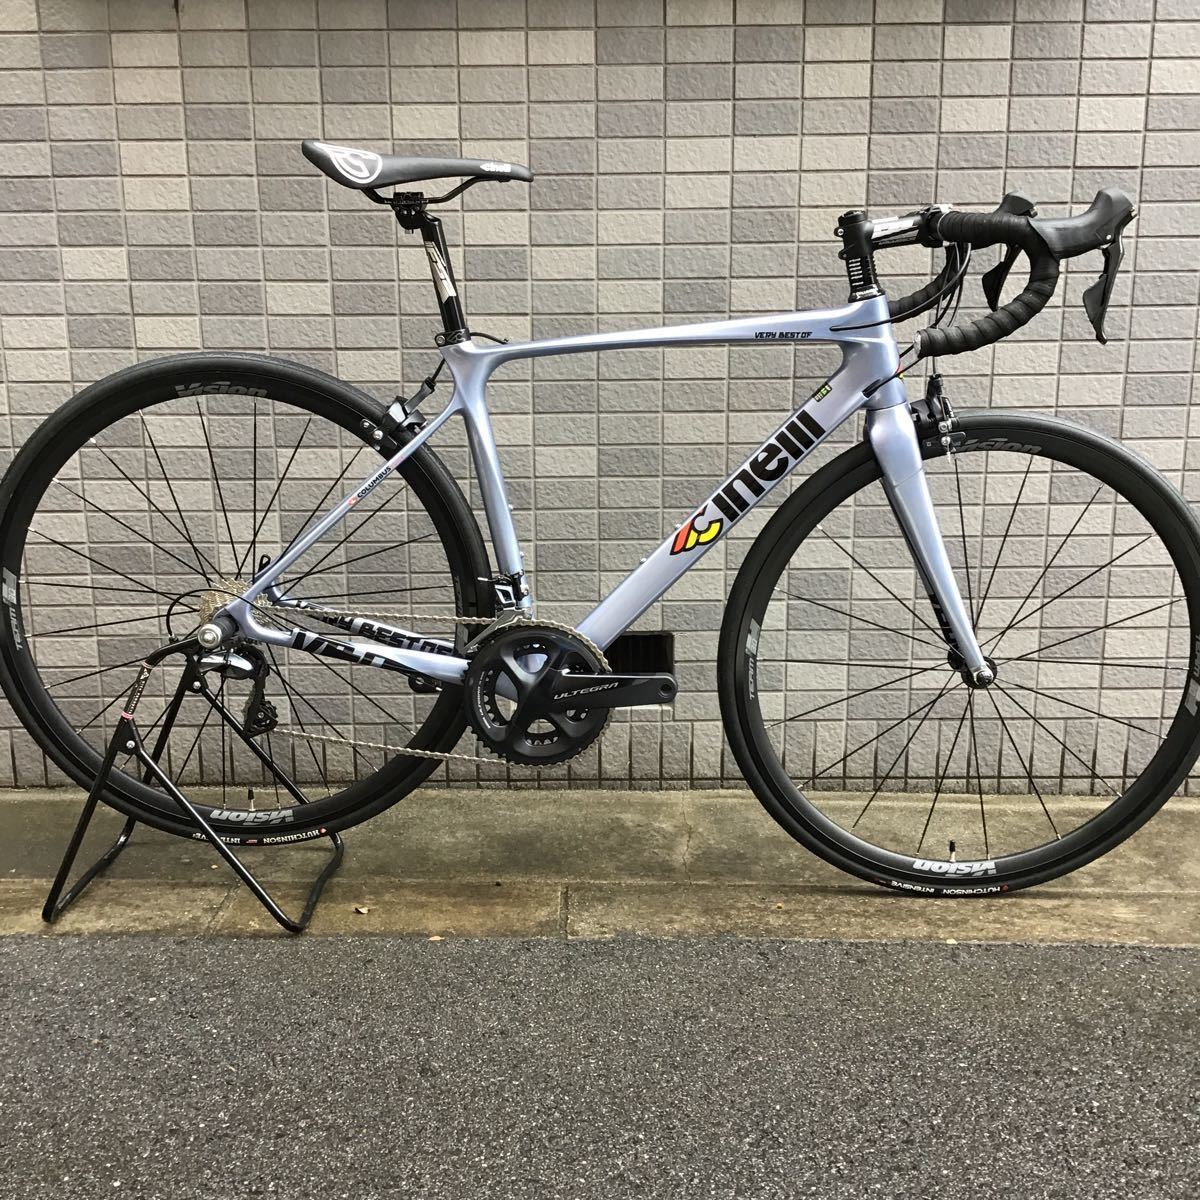 ■2019 Cinelli VERY BEST OF LTD シマノULTEGRA(8000) S 480mm■_画像1